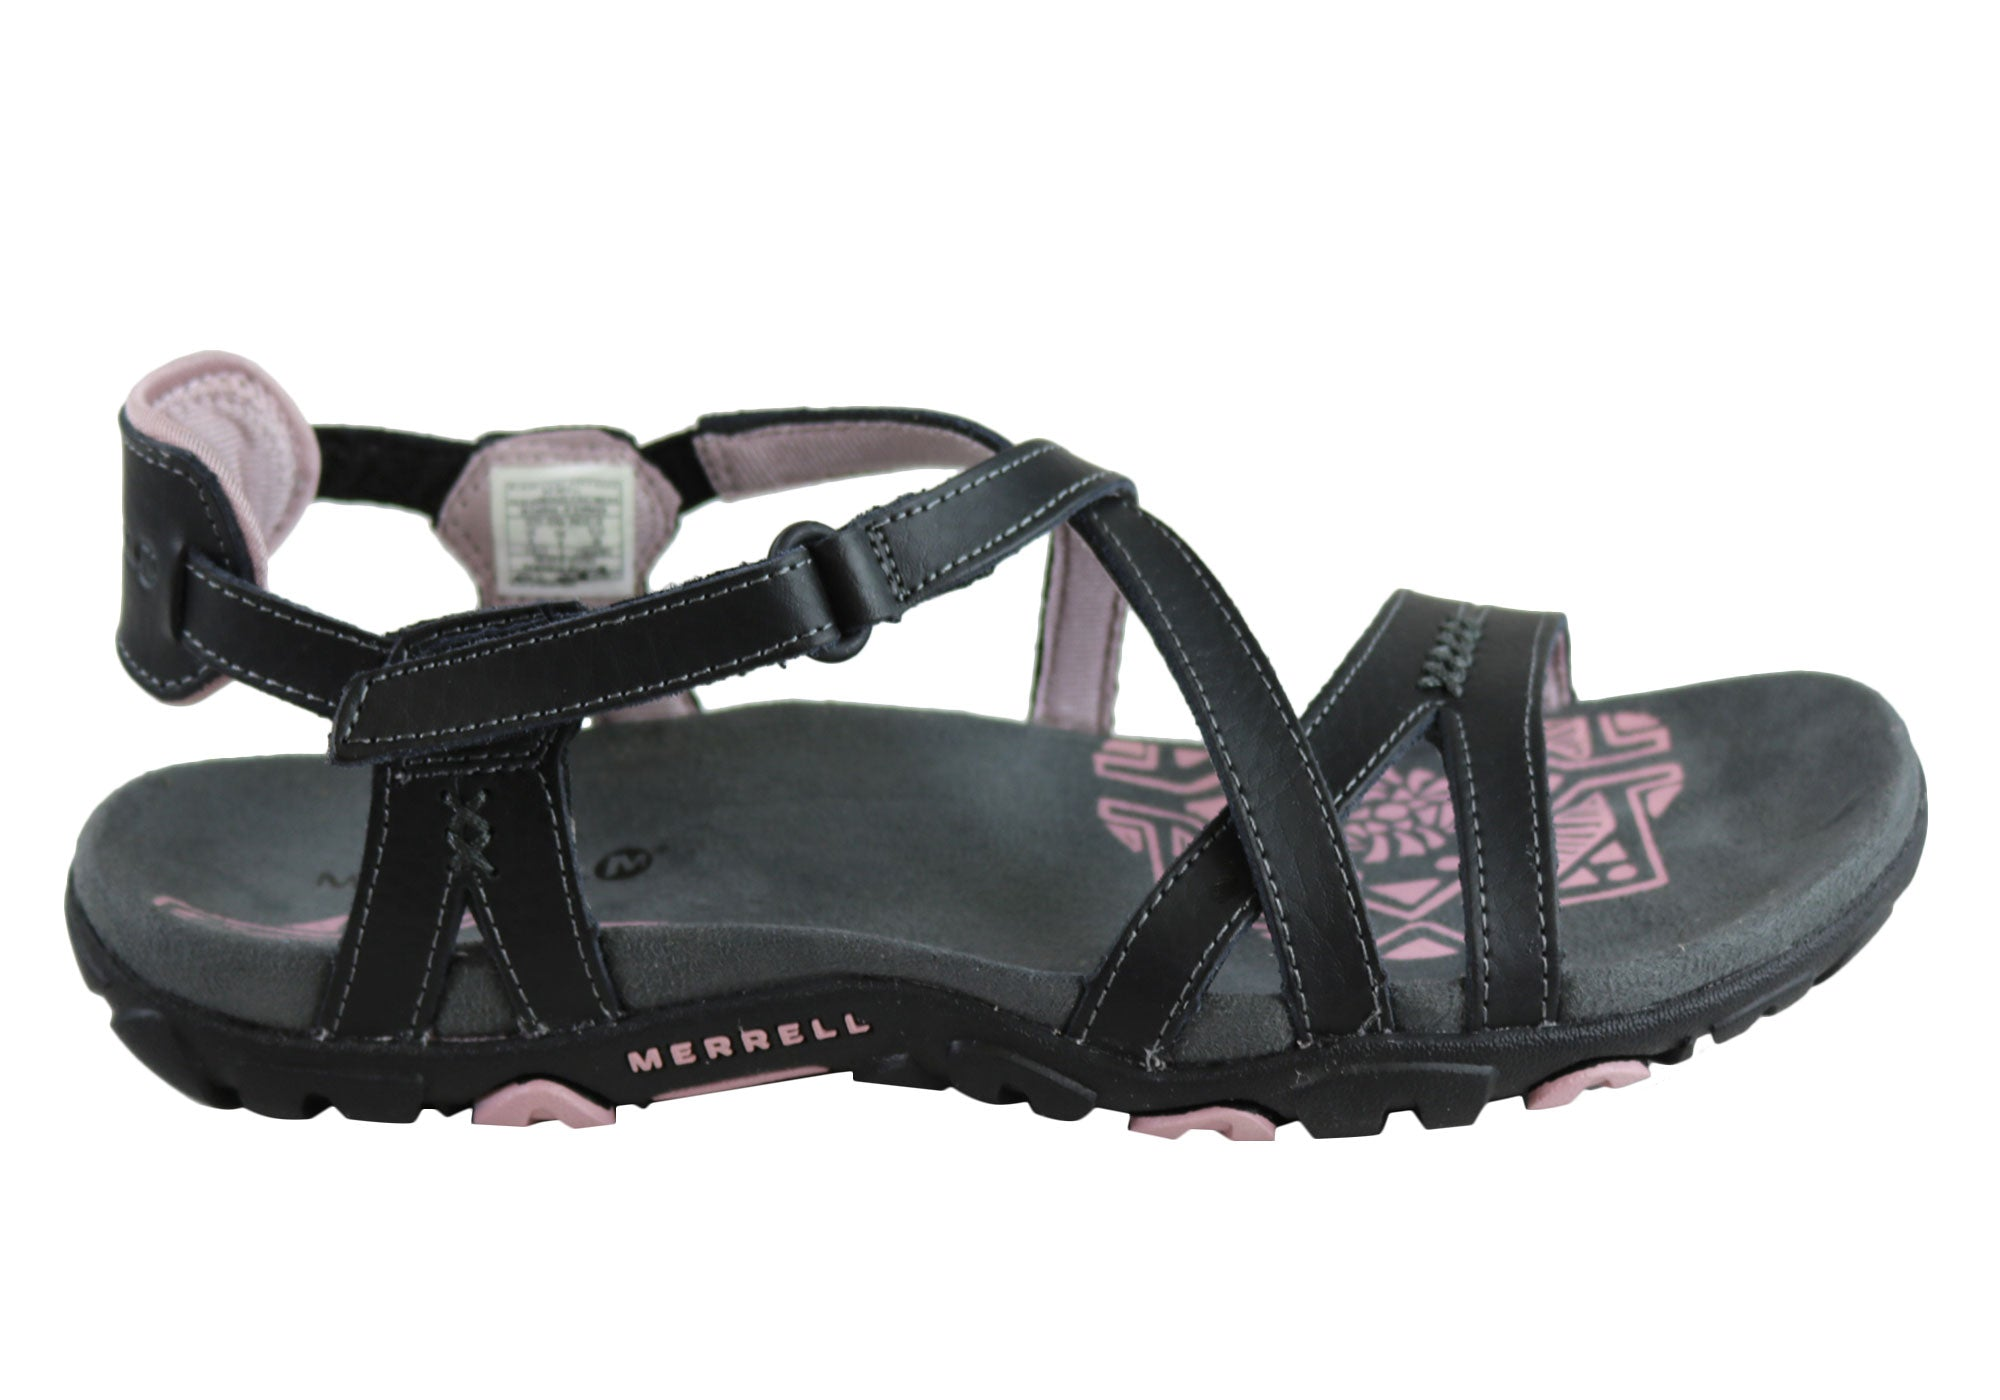 NEW-MERRELL-WOMENS-COMFORT-FLAT-SUPPORTIVE-SANDSPUR-ROSE-LEATHER-SANDALS